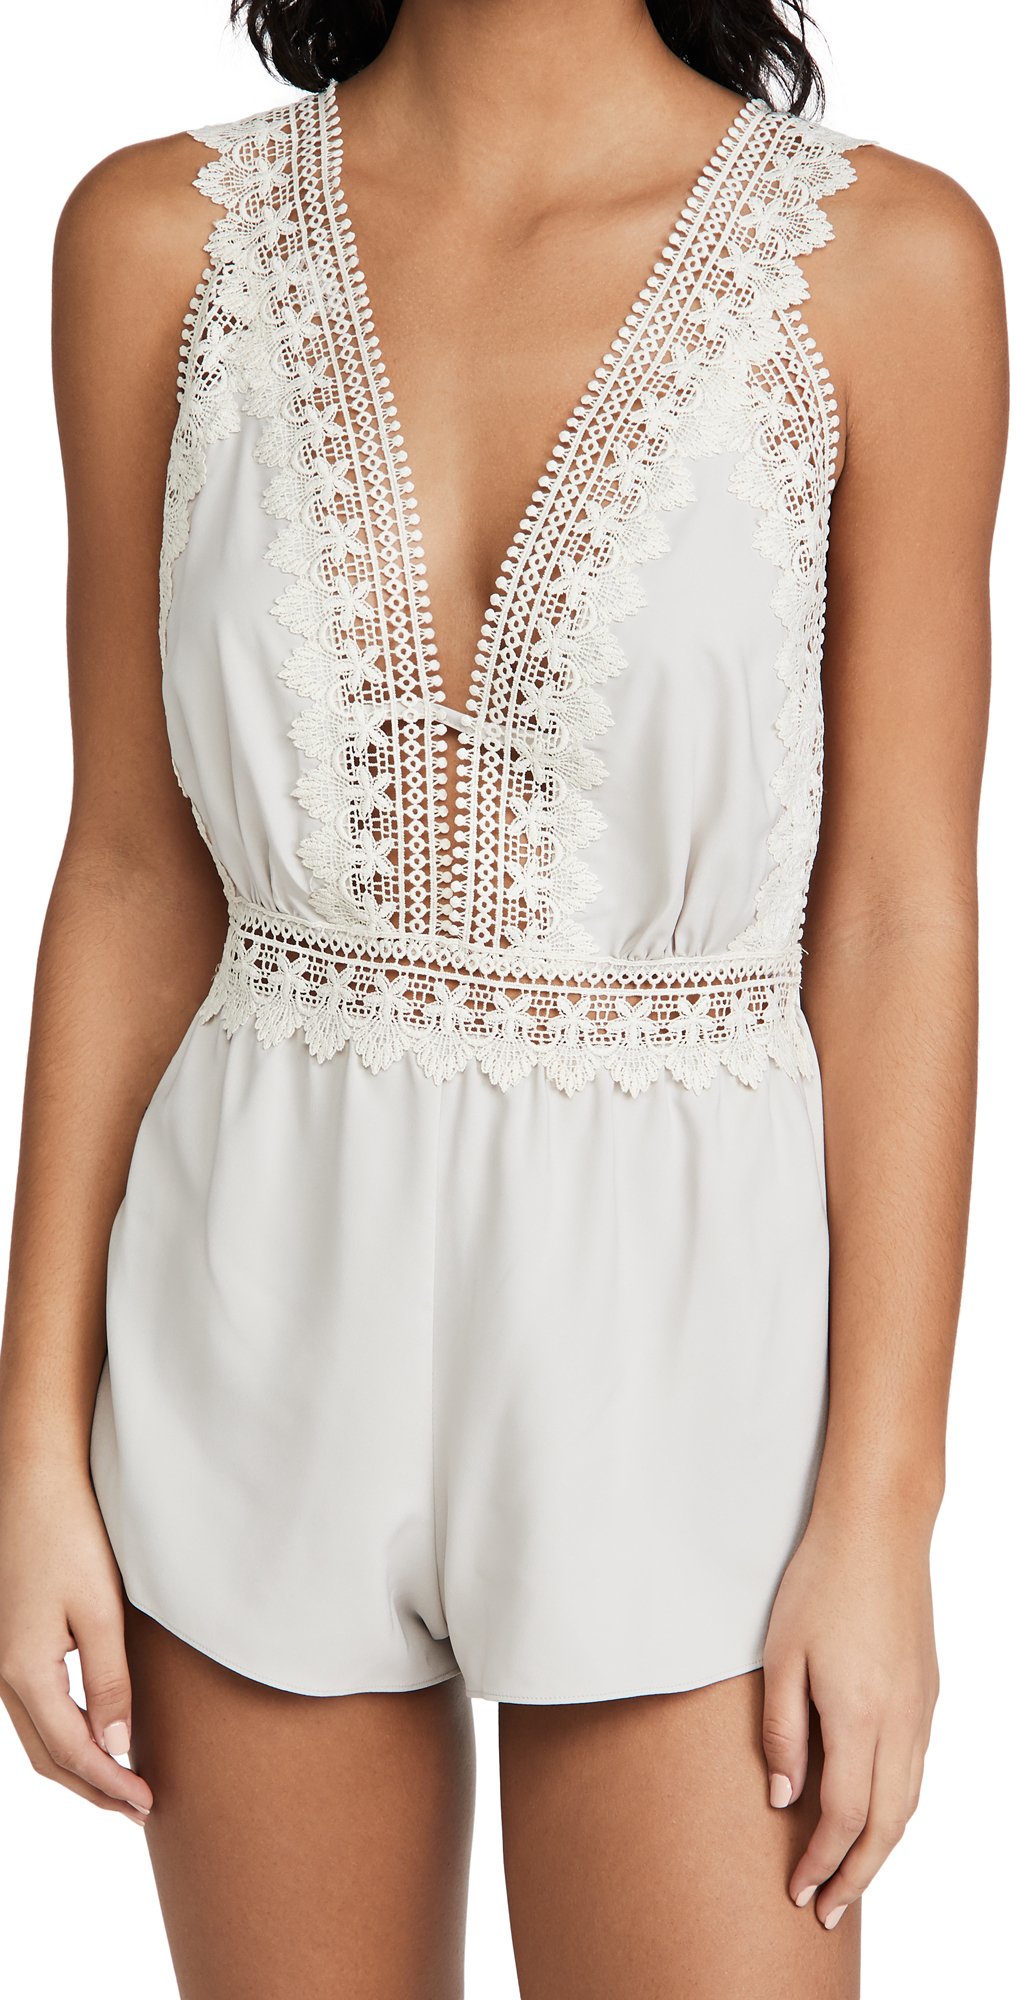 Blythe Matte Charmeuse Romper with Lace